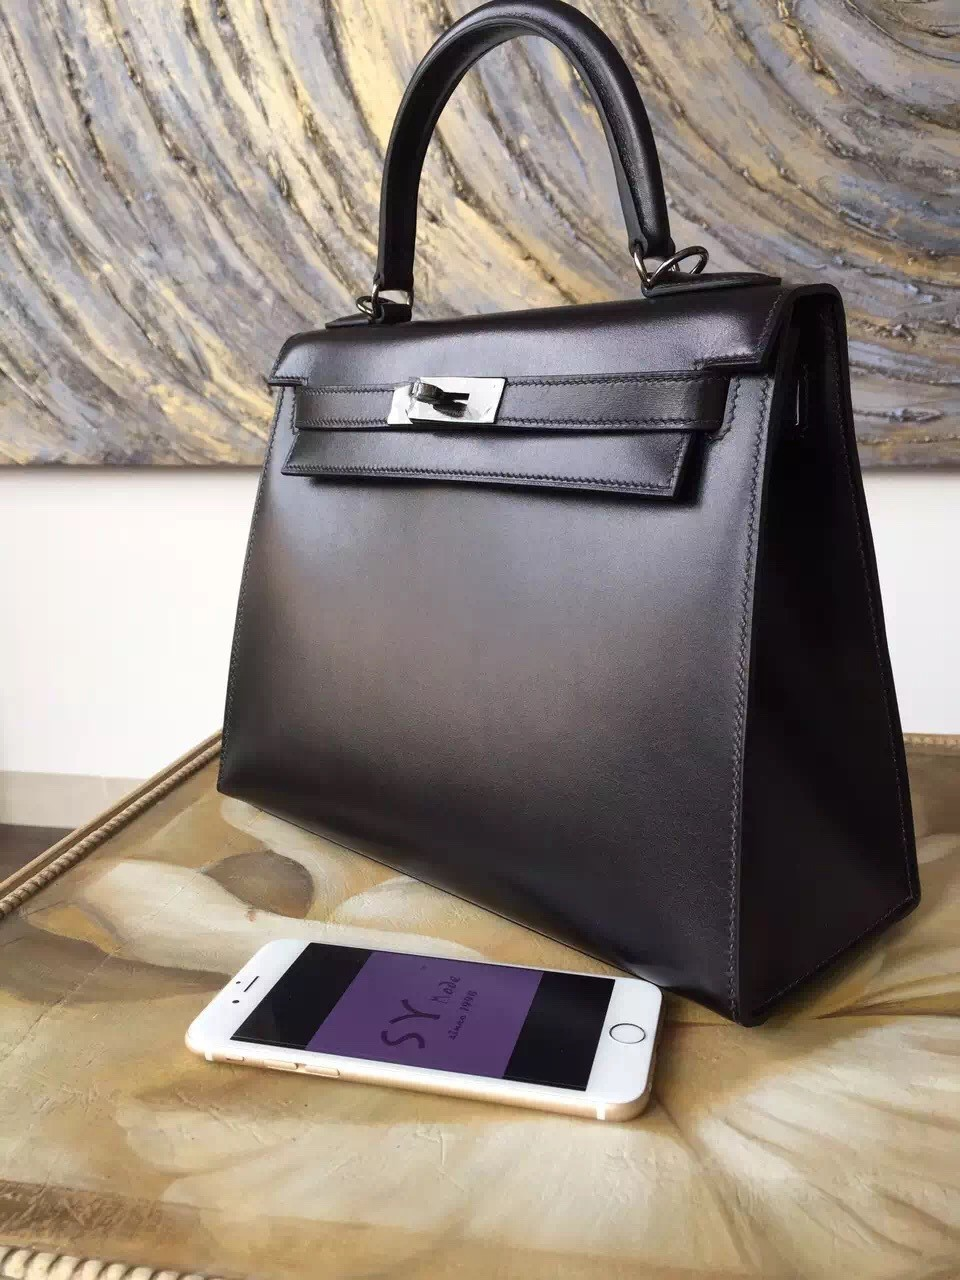 limited-edition-hermes-kelly-28cm-box-calfskin-original-leather-bag-handstitched-so-black-rs09188-2